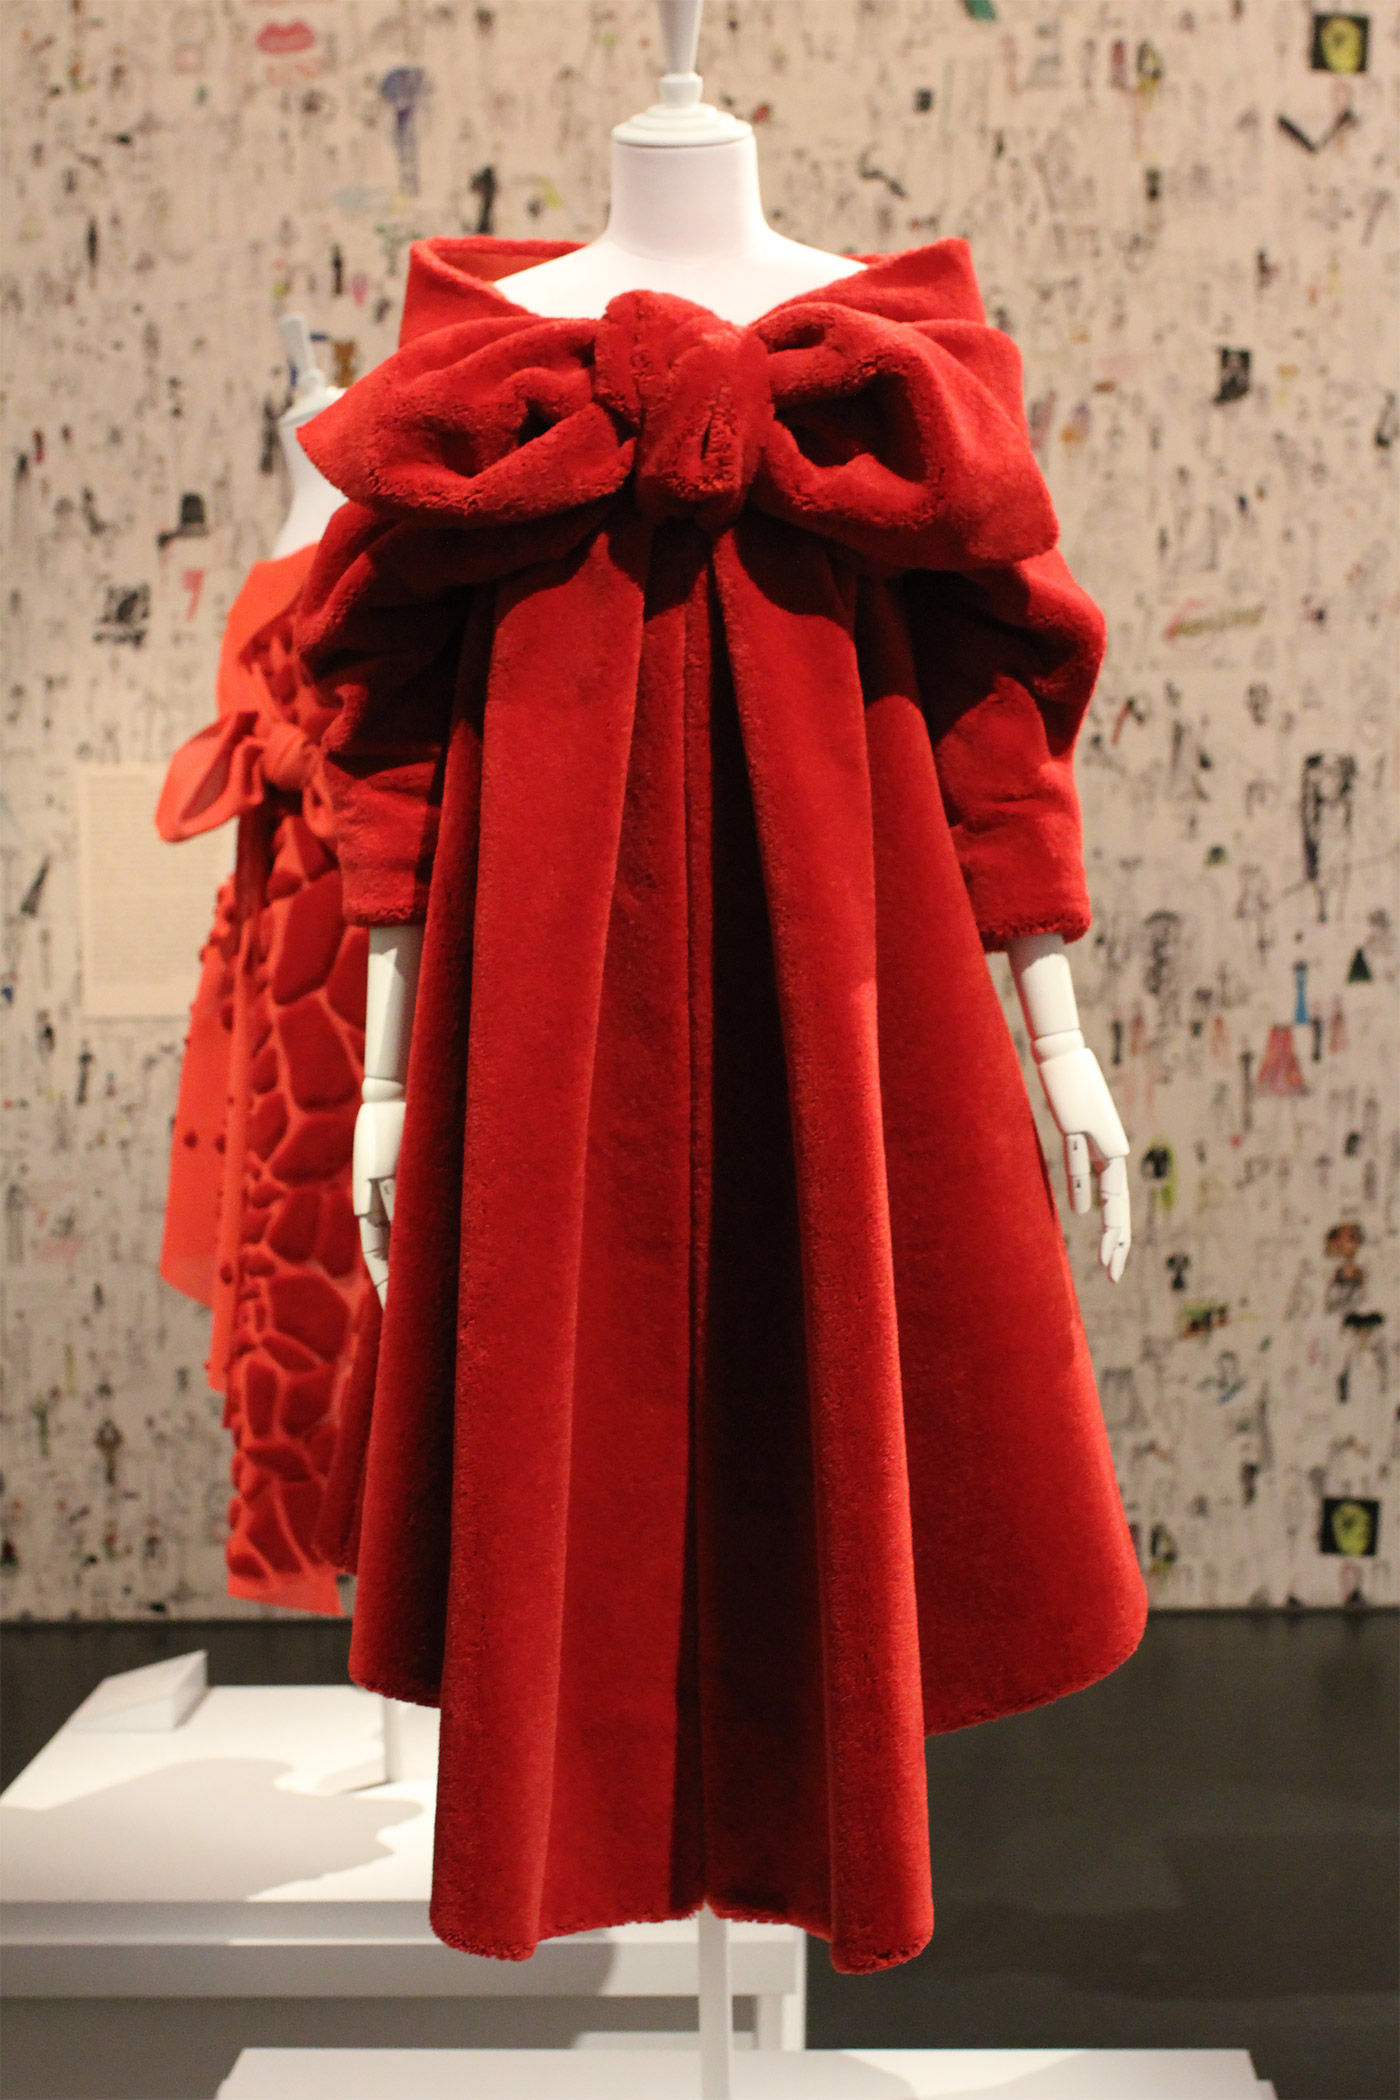 Red Carpet Collection in Fall 2014.